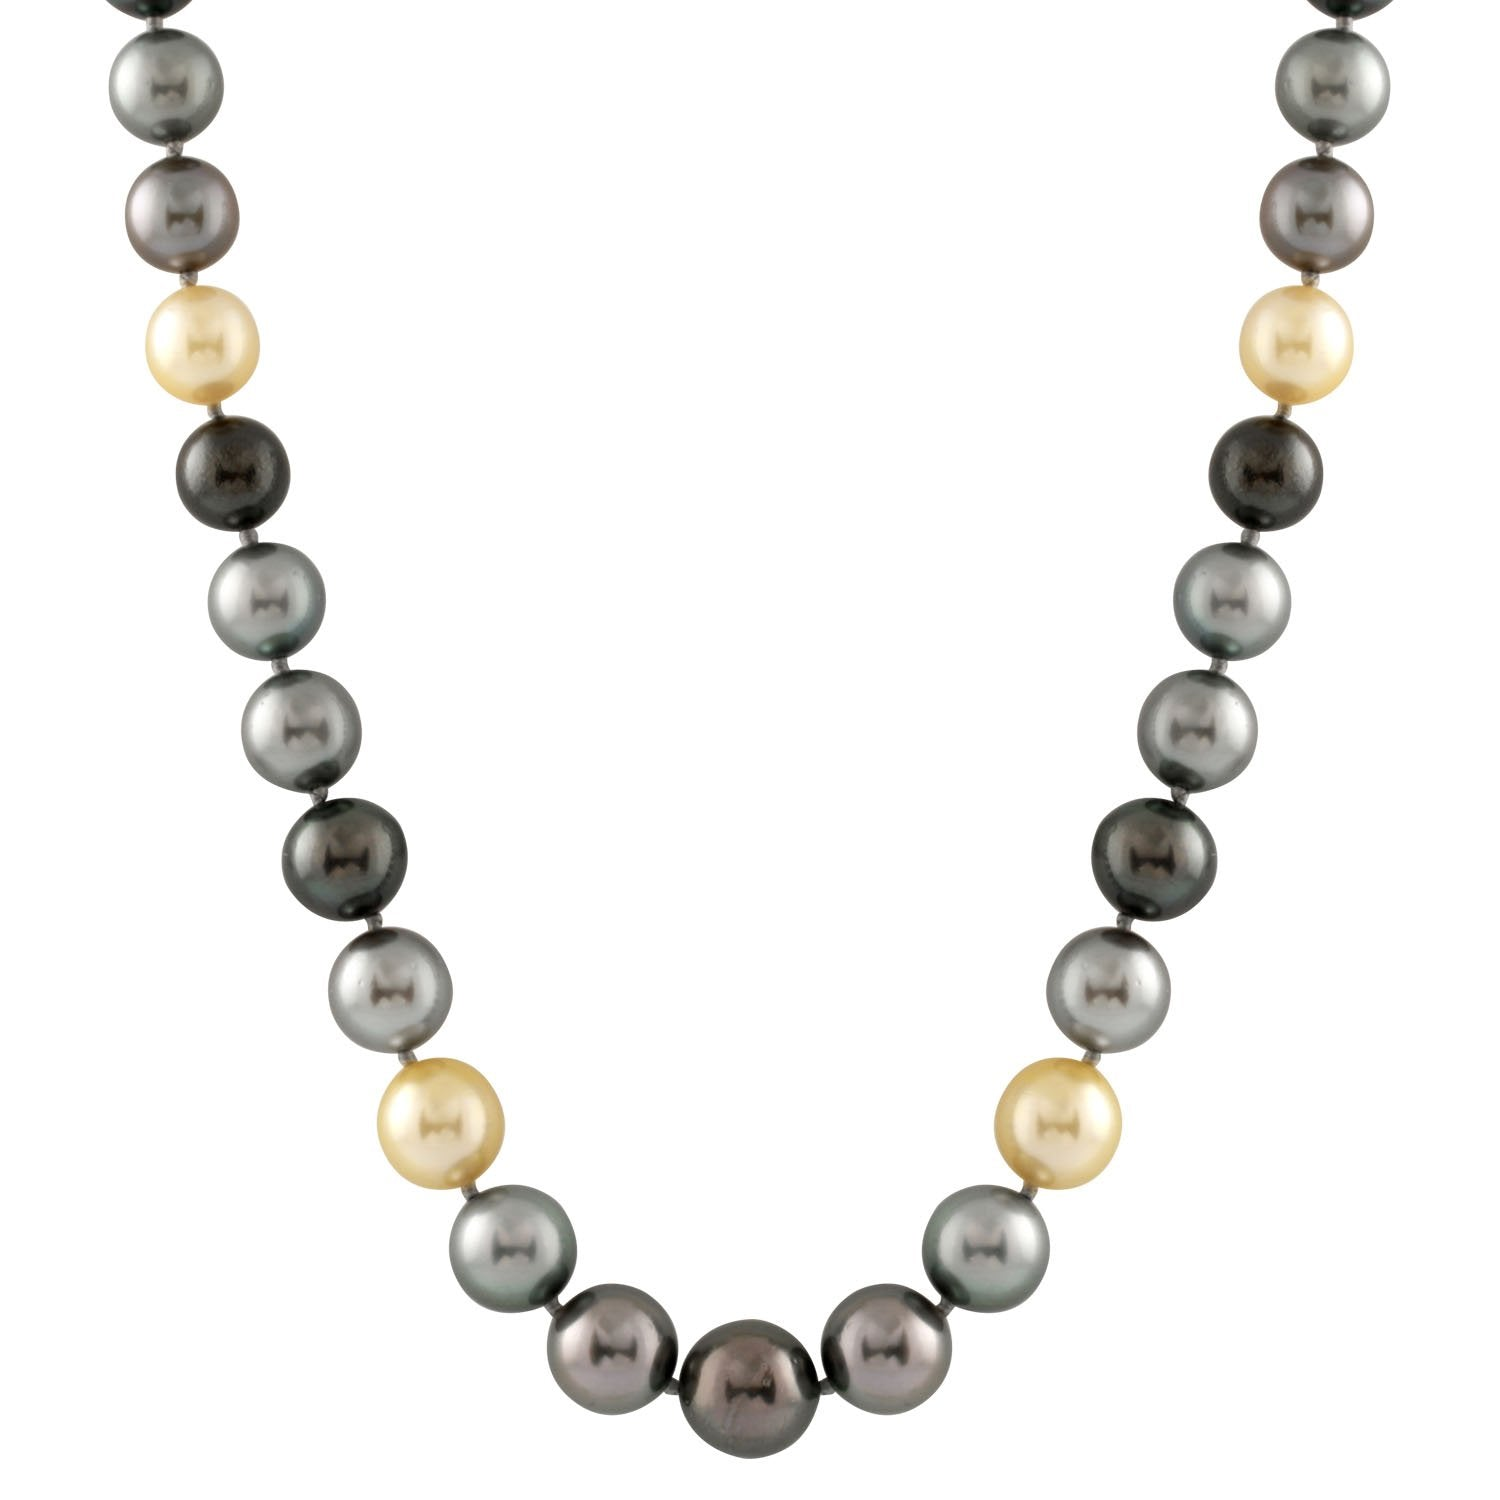 Multicolored Tahitian South Sea Necklace